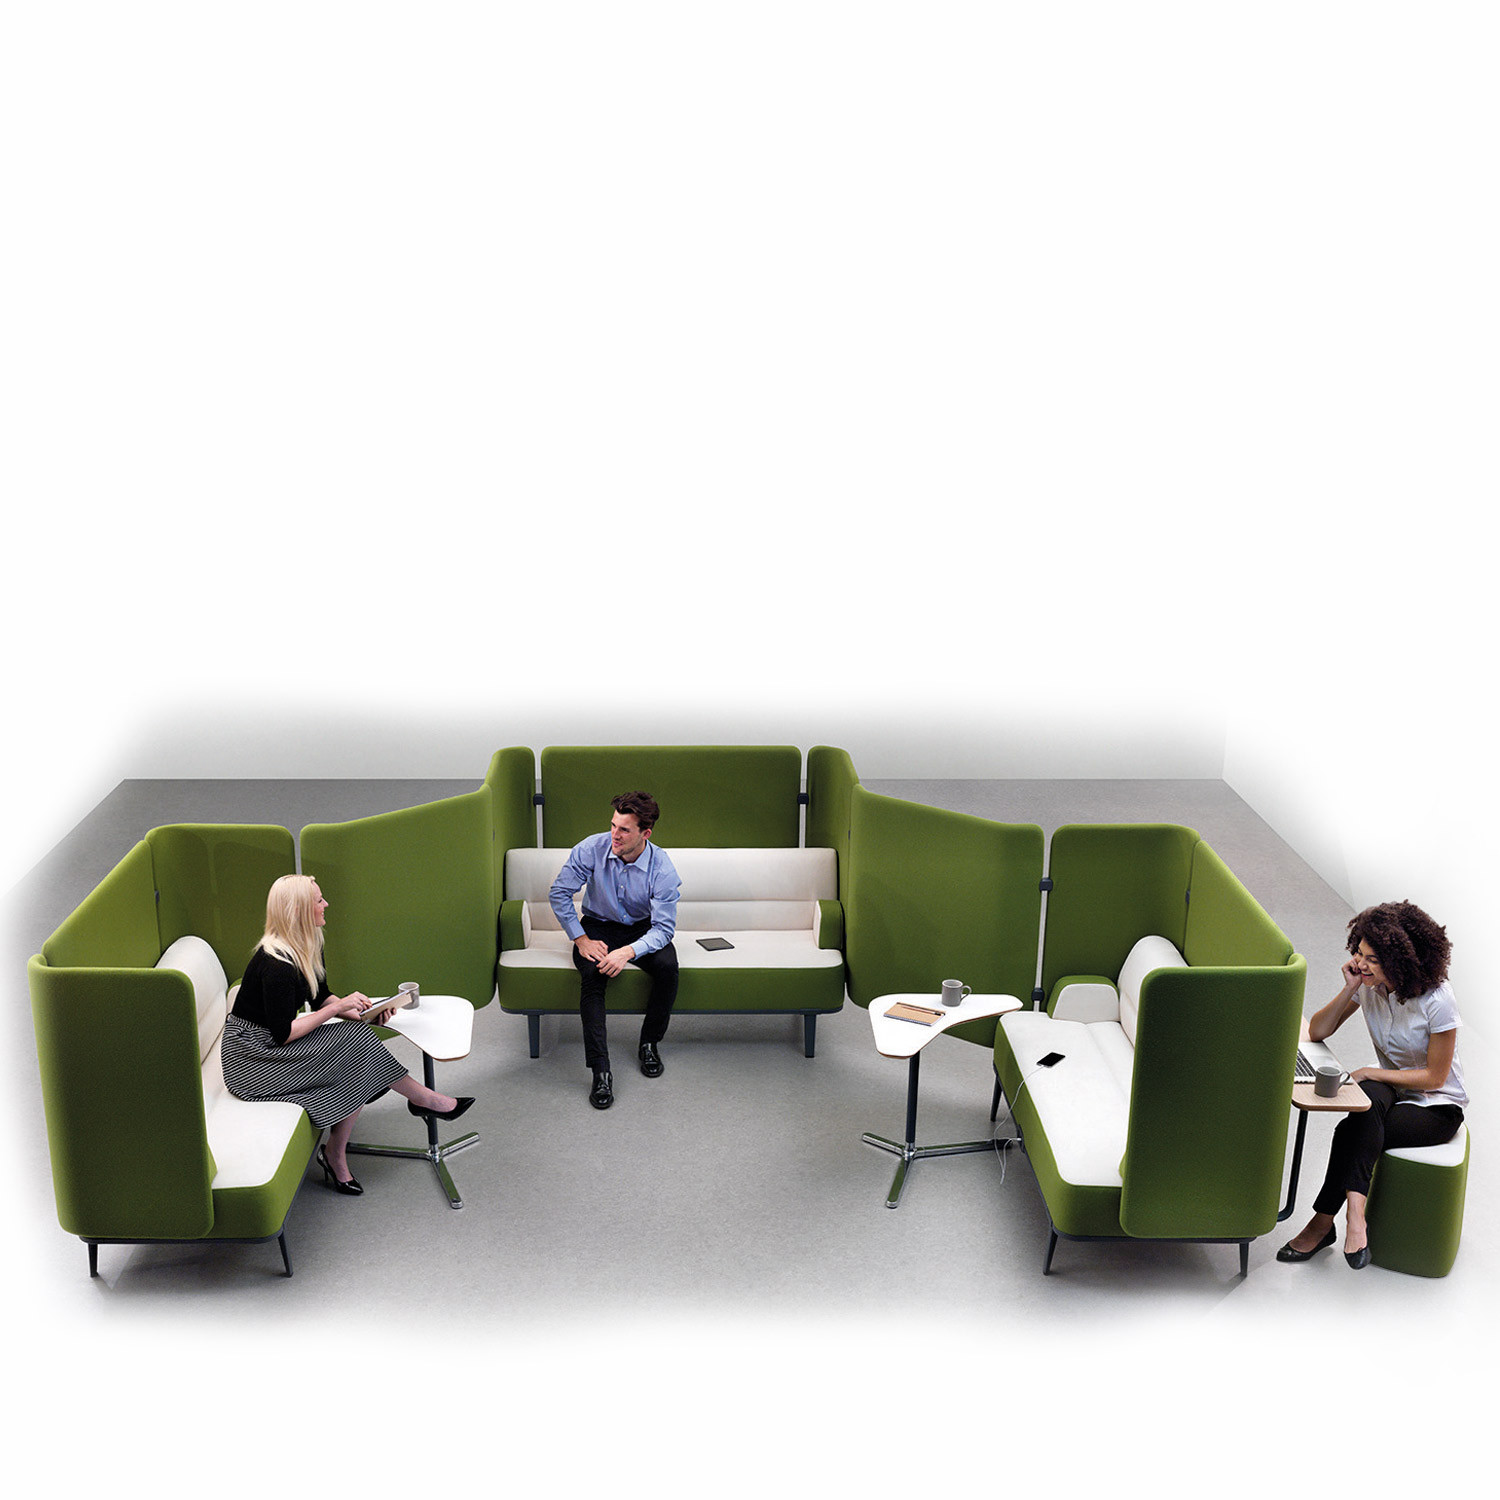 office furniture sofa uk throws online india mote modular seating apres